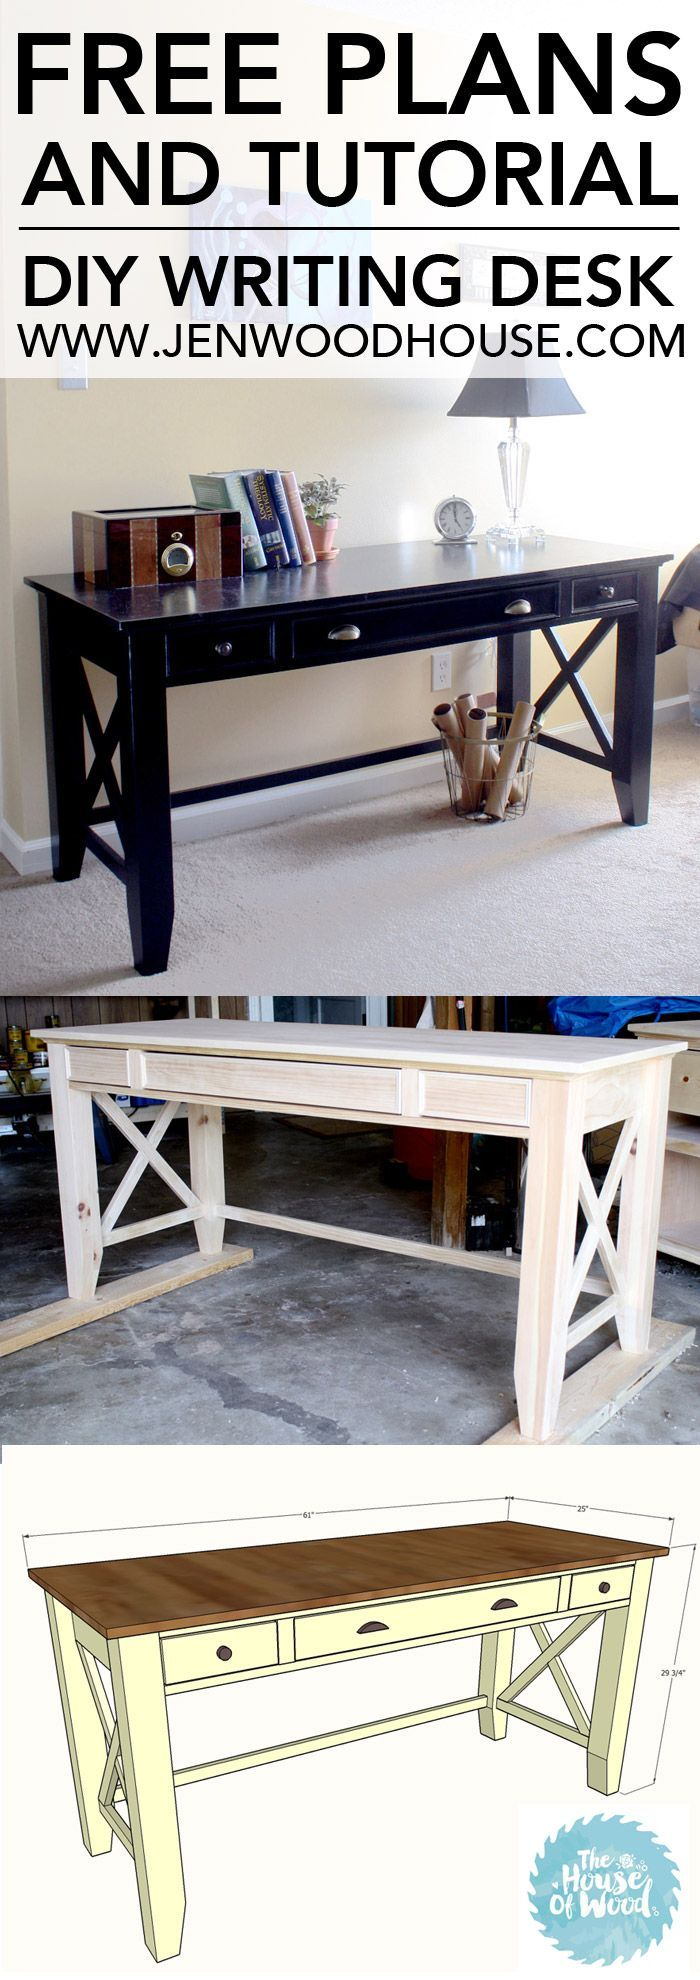 717 best images about to make furniture and home stuff for Diy desk stuff